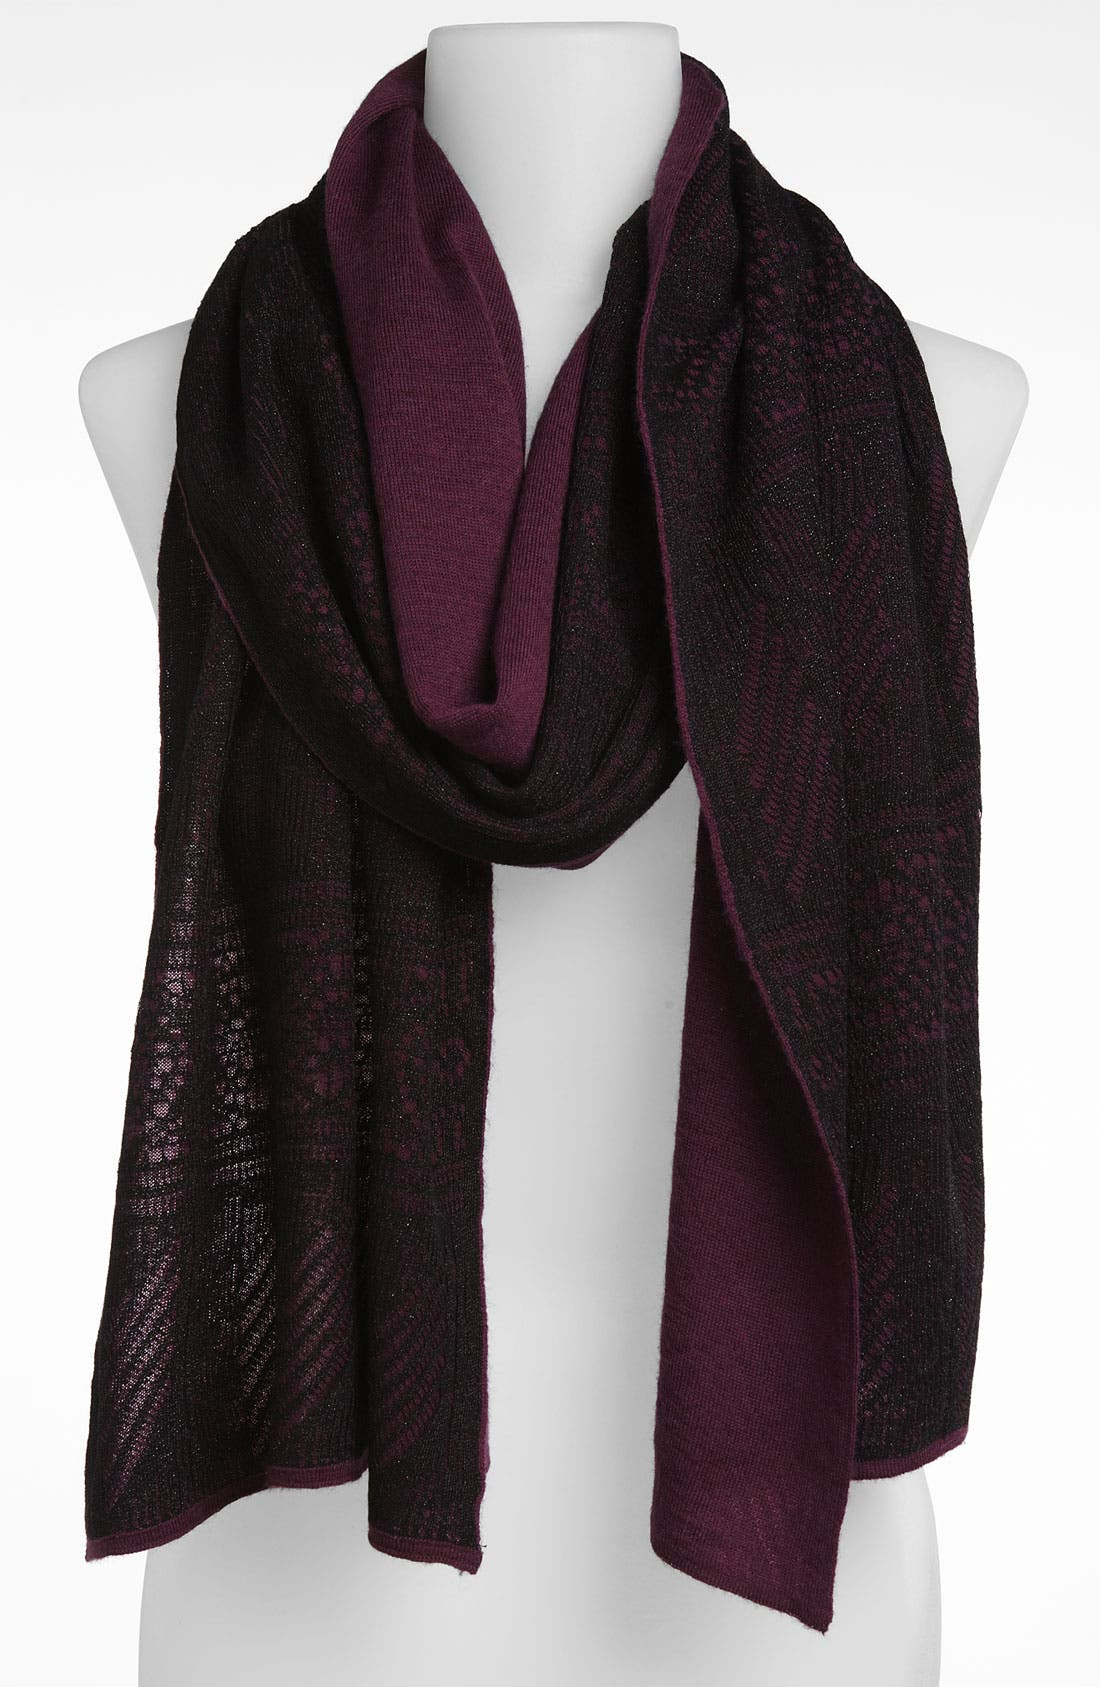 Alternate Image 1 Selected - Nordstrom Collection 'Metallic Lace' Wool Blend Scarf